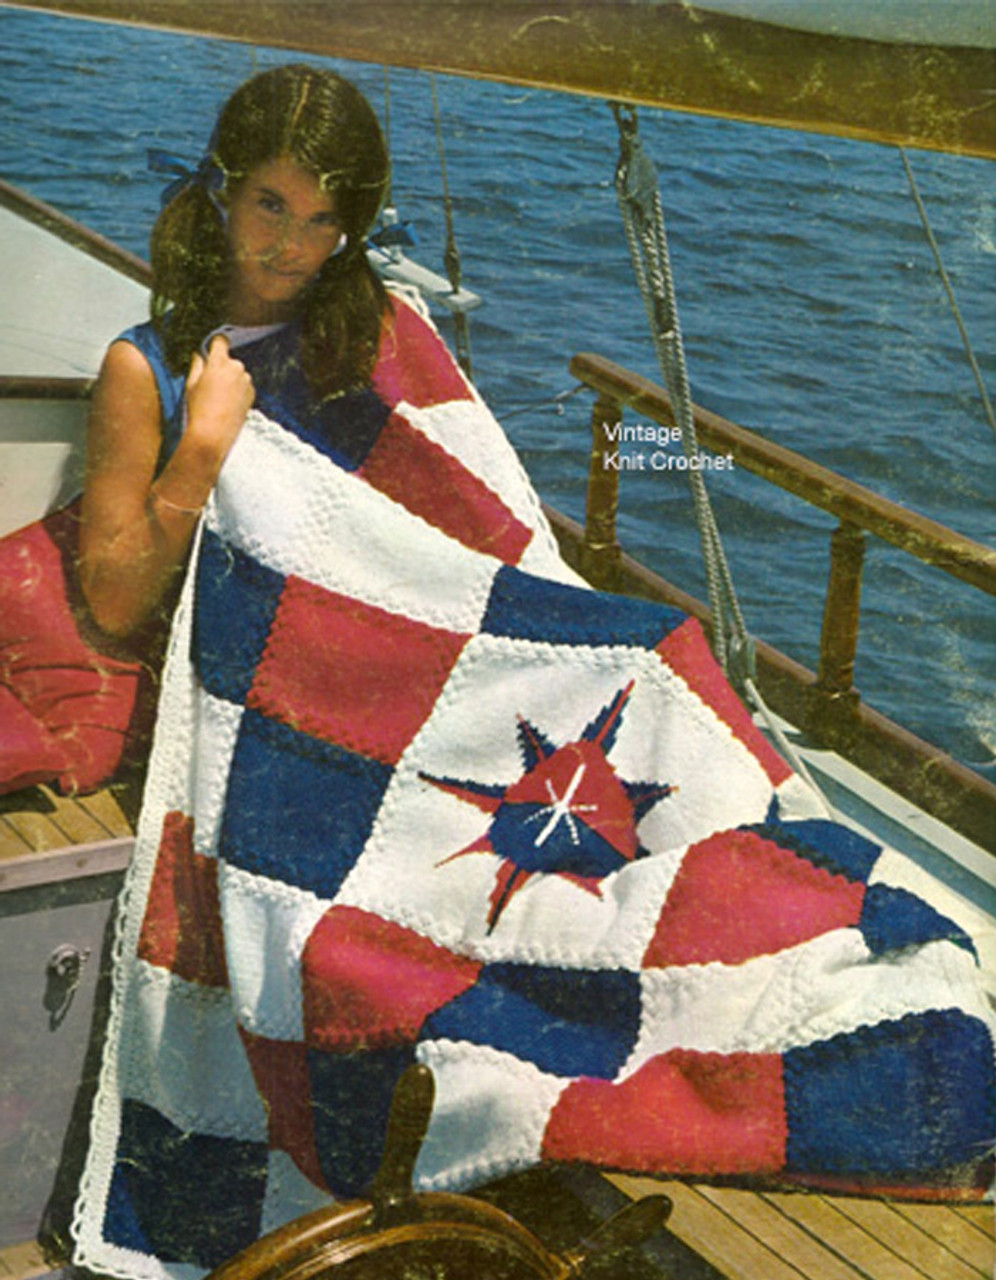 Crocheted Nautical Star Afghan Pattern